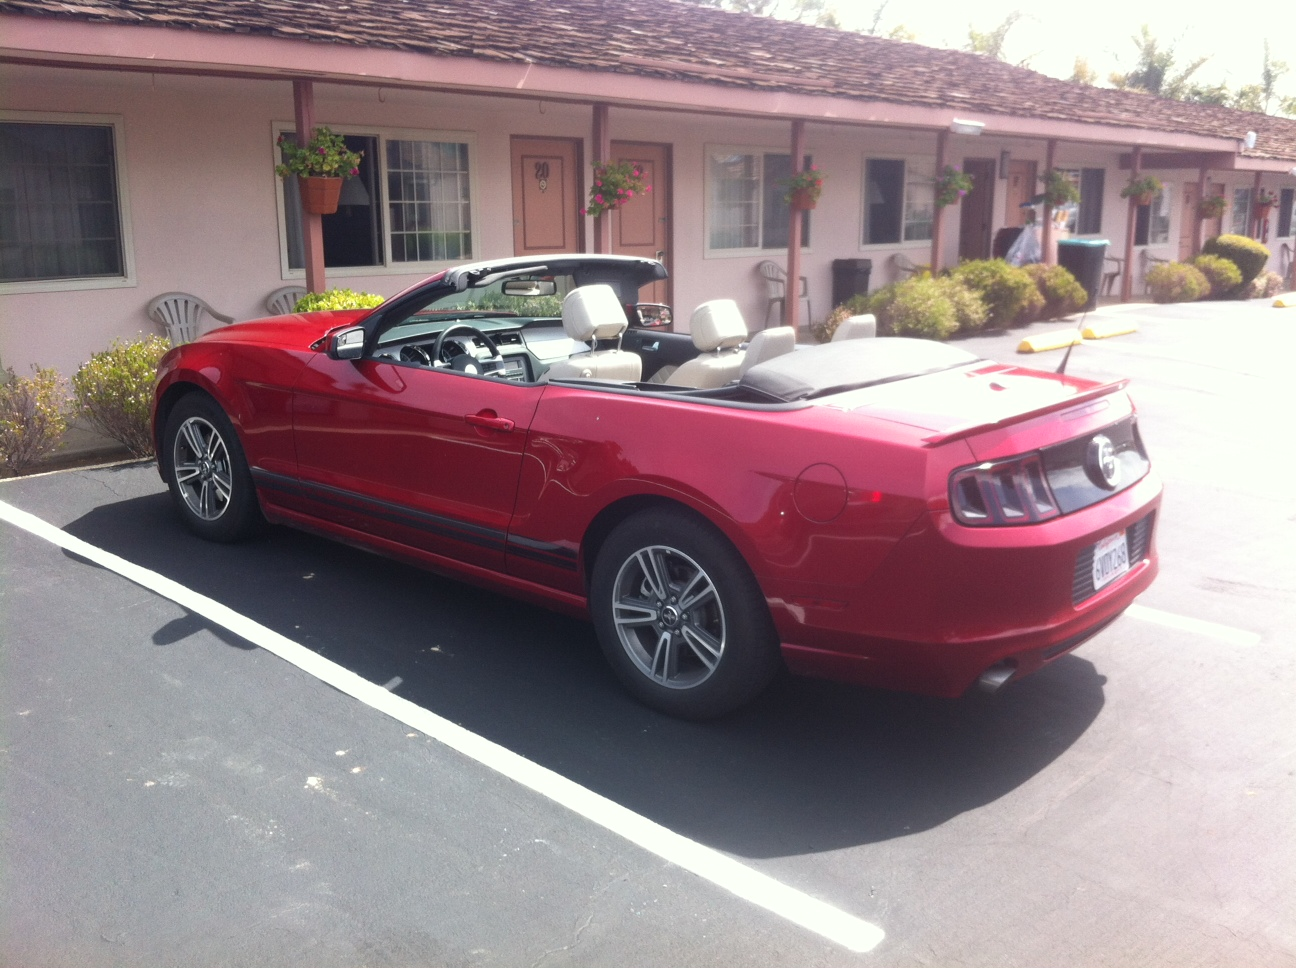 What do you get if you book convertible car rental in usa